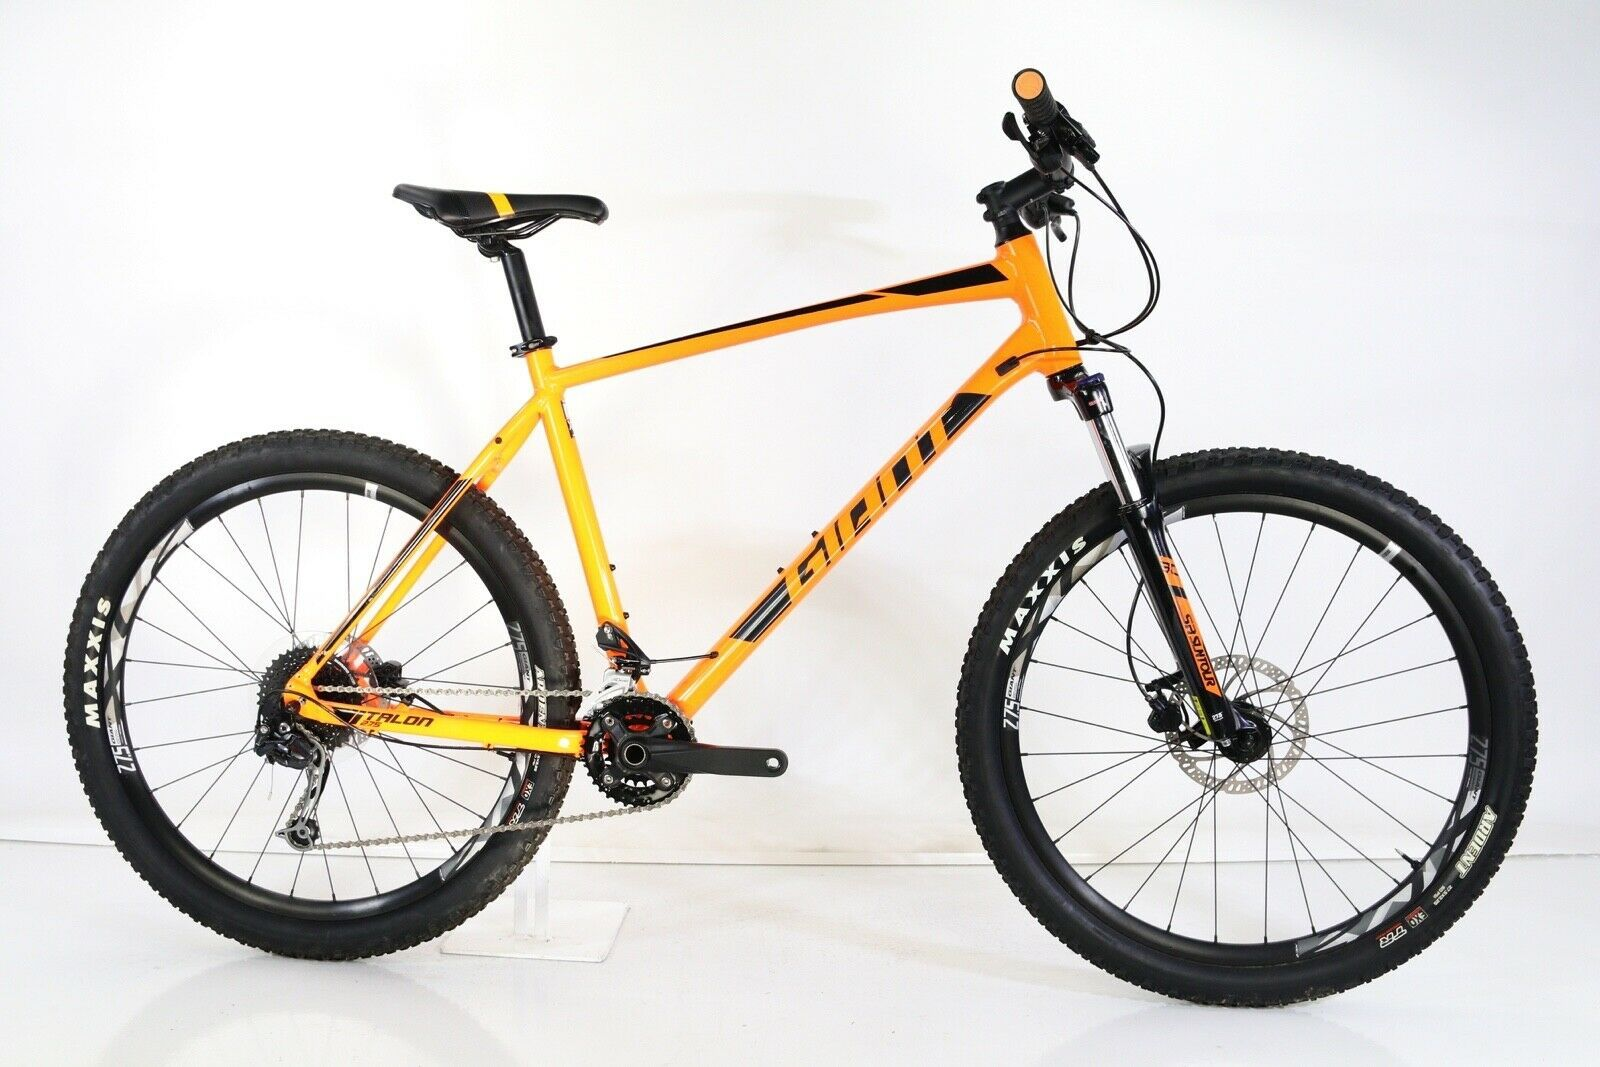 2019 Giant Talon 2 Size Xl Mountain Bike Ideas Of Mountain